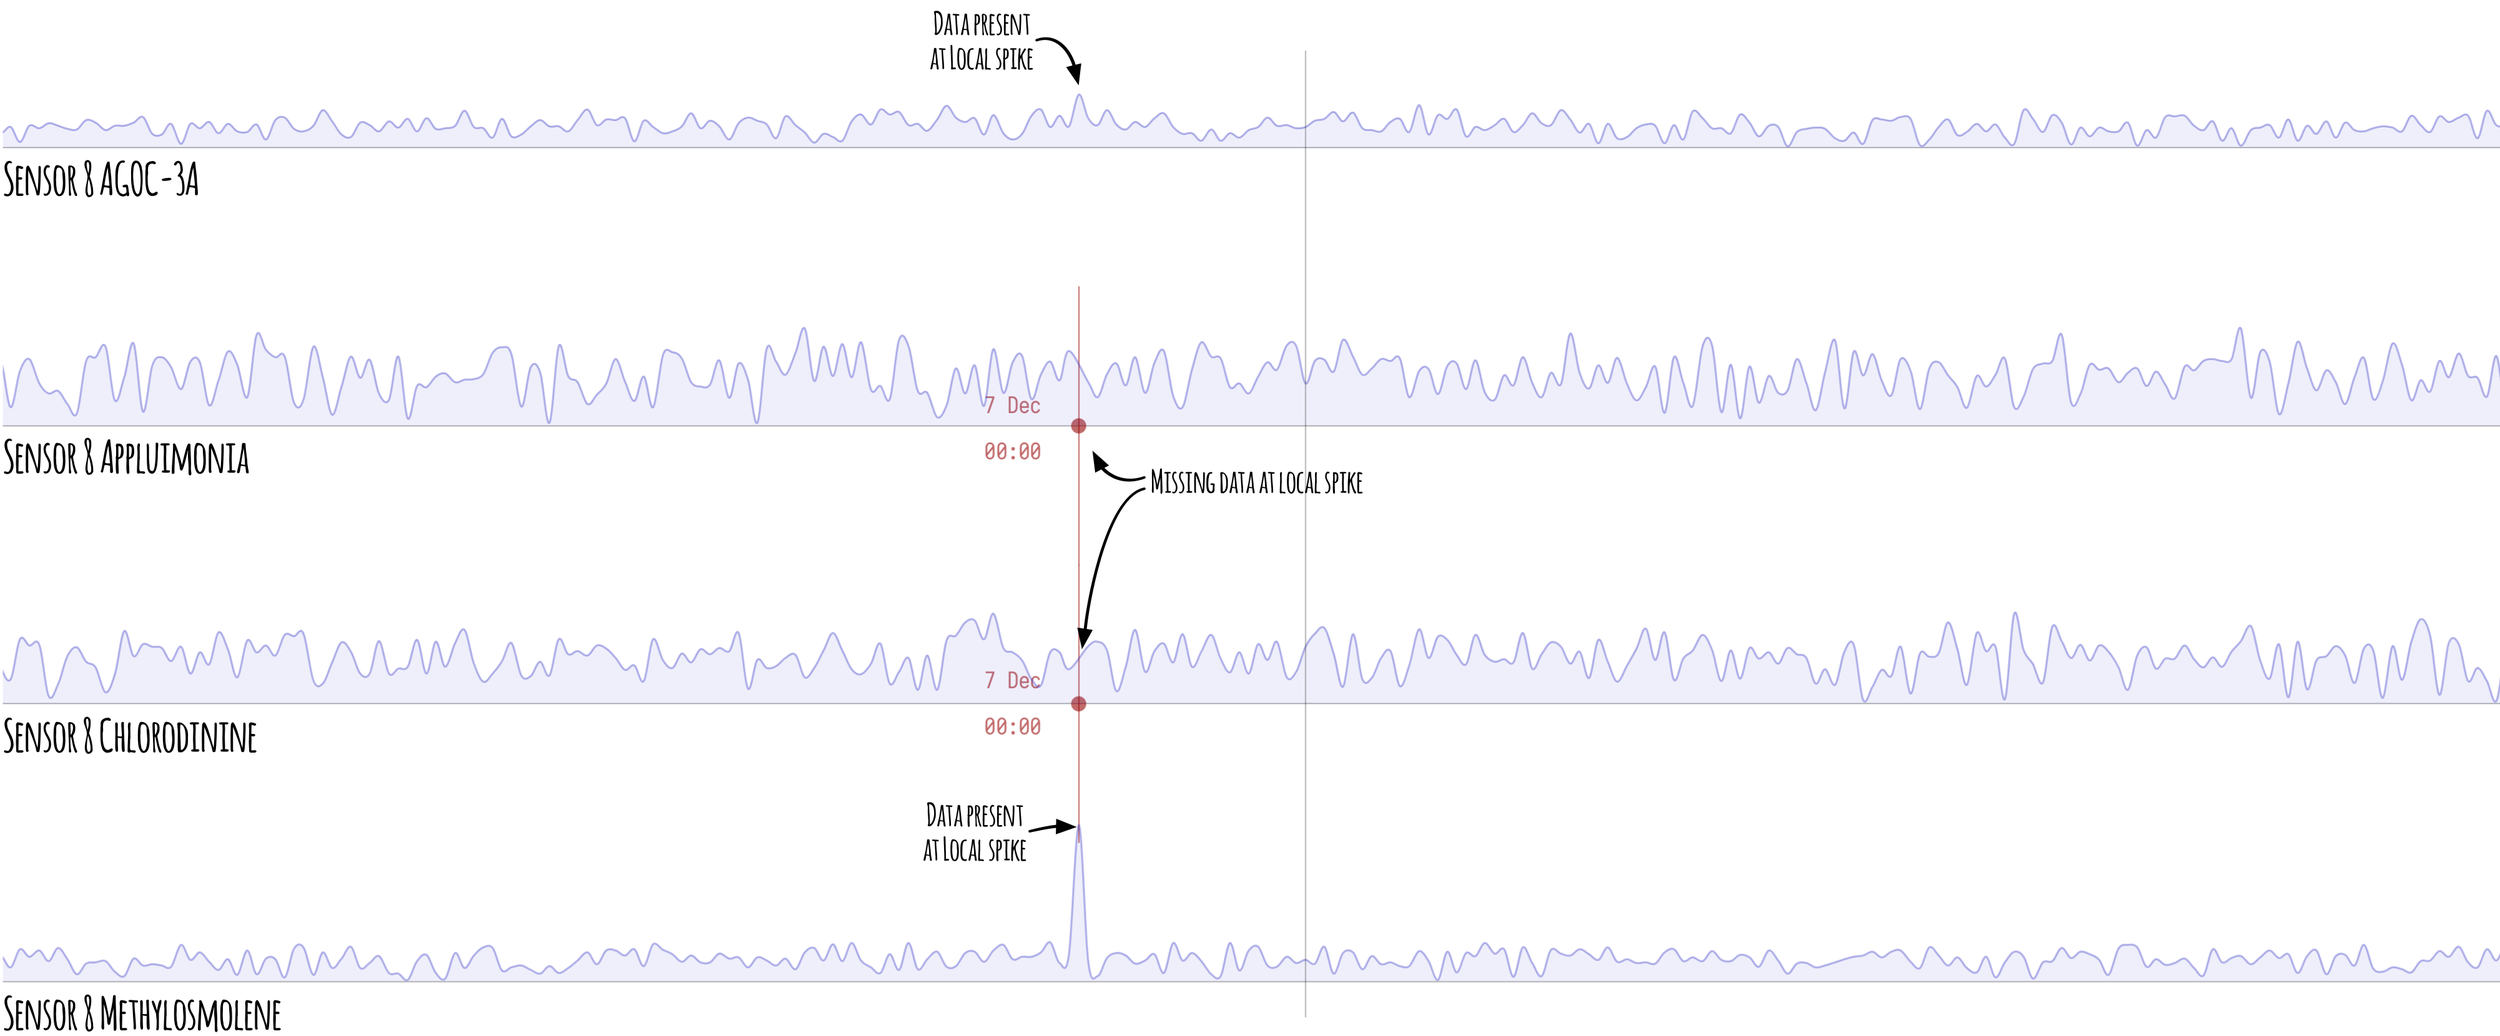 Figure 6  -Zoomed in Sensor 8 chart showing the Methylosmolene and AGOC-3A exceptions to 7th December data gap coincides with large spike in Methylosmolene and moderate spike in AGOC-3A.